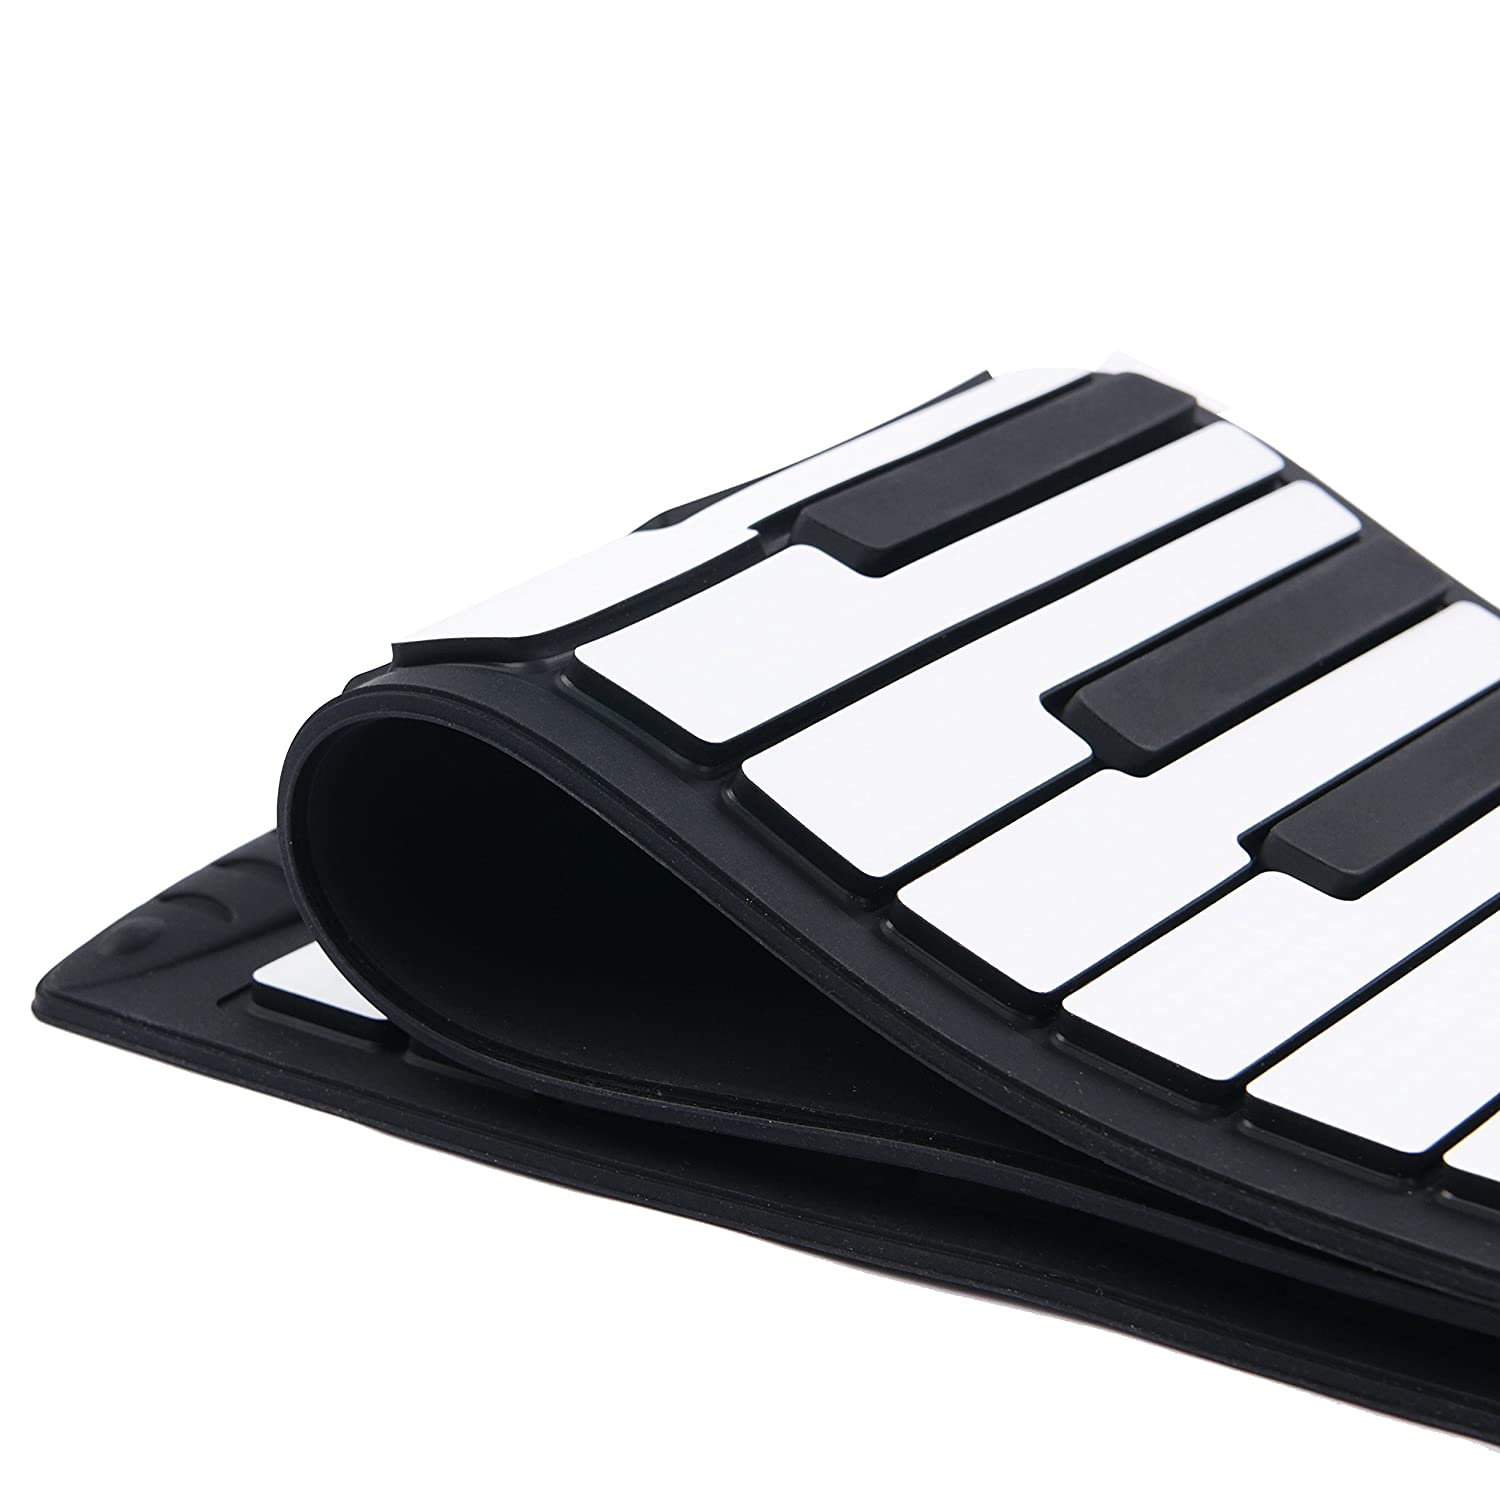 88 Keys Roll Up Piano Midi Out Music Recording Foot Pedals Flexible Silicone Midi Hand Roll Electronic Keyboard EnzoDate